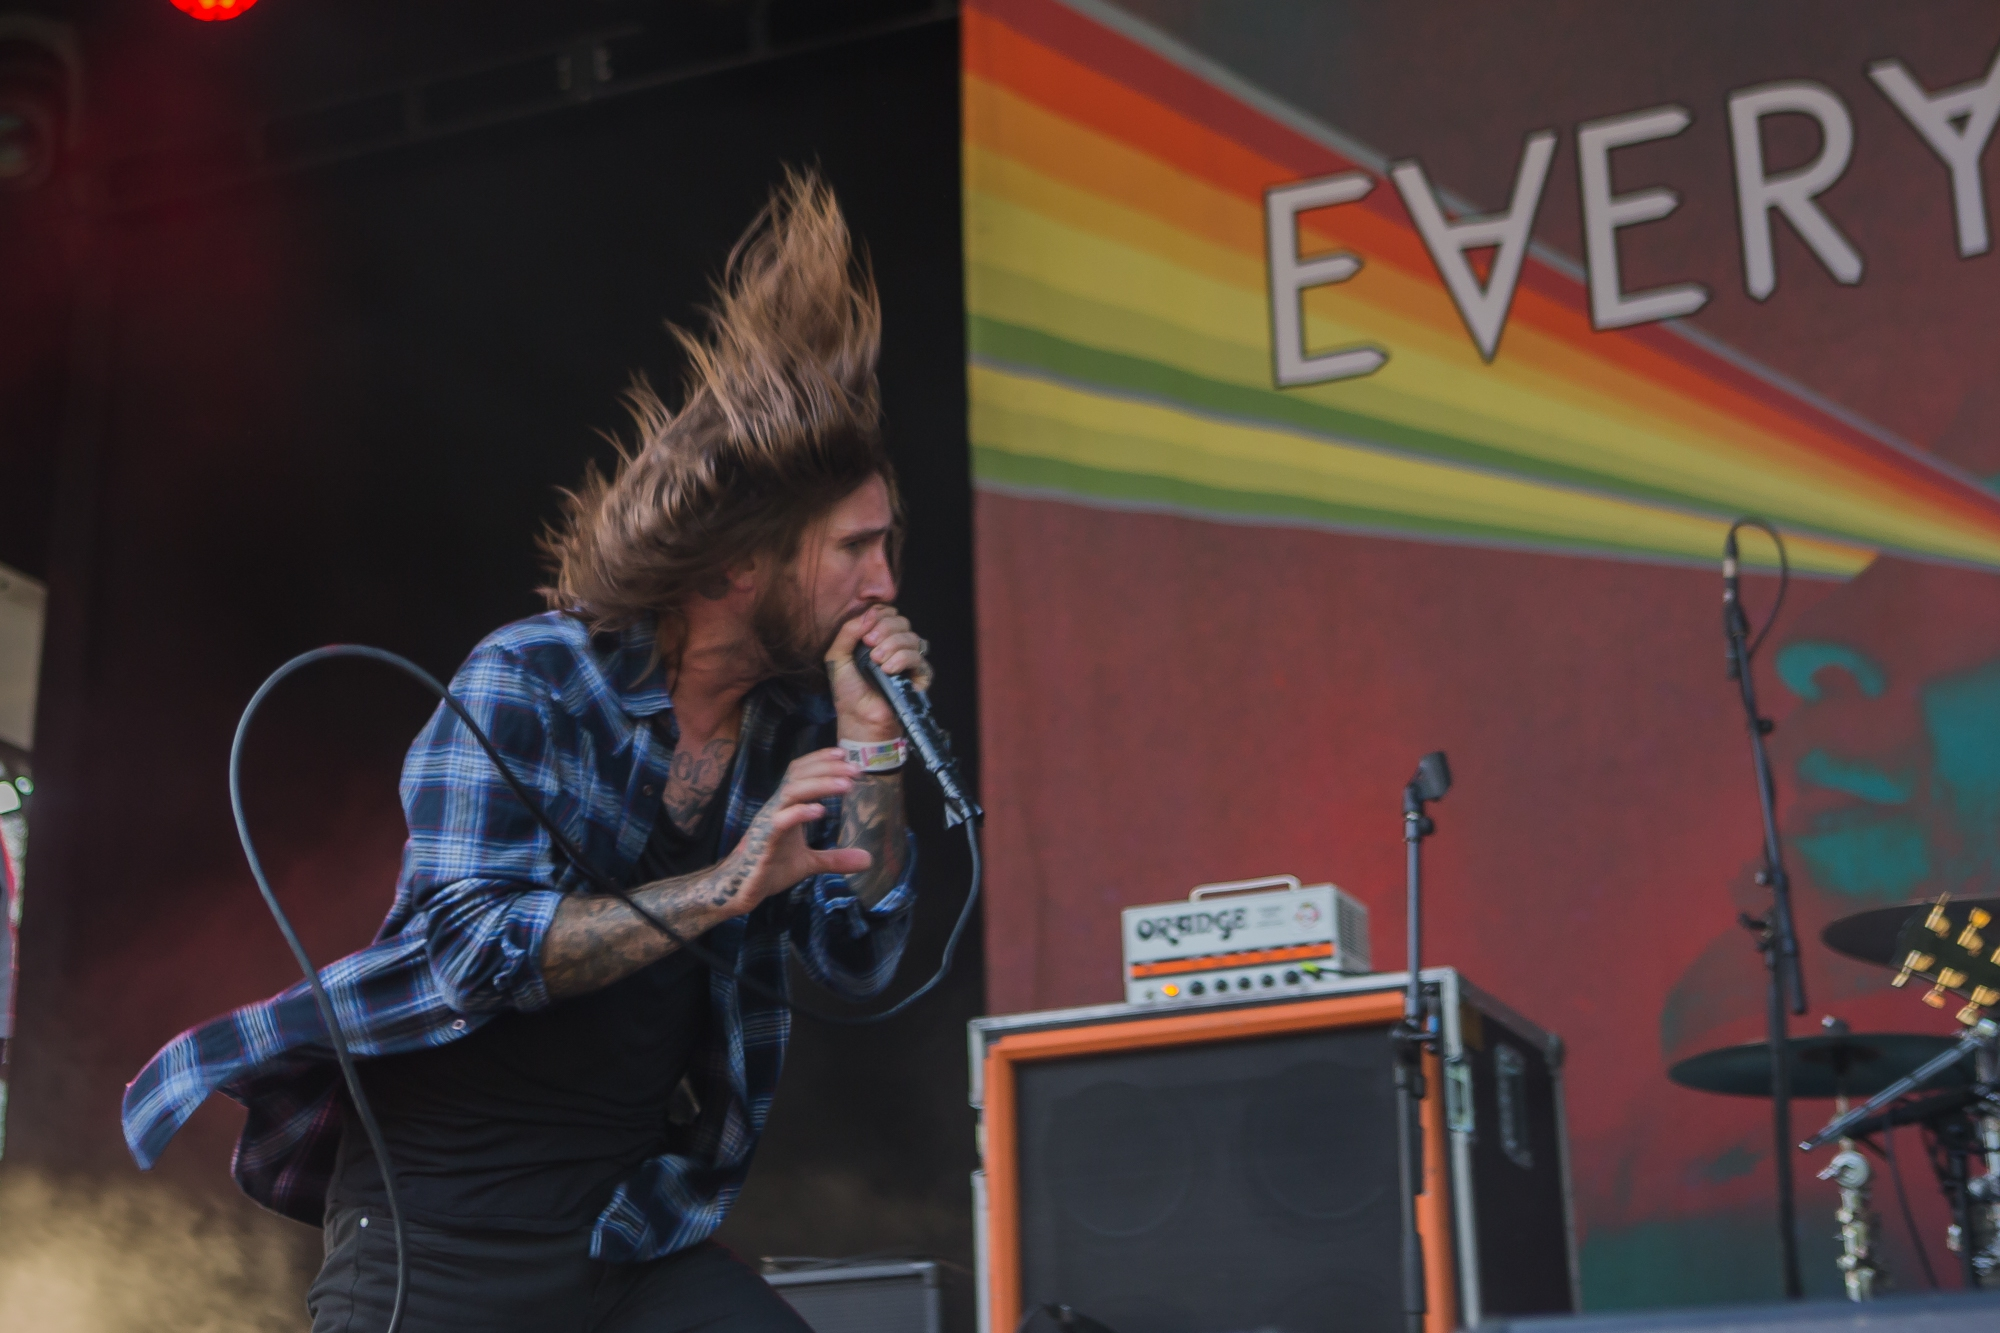 Every Time i Die_Guschi-9